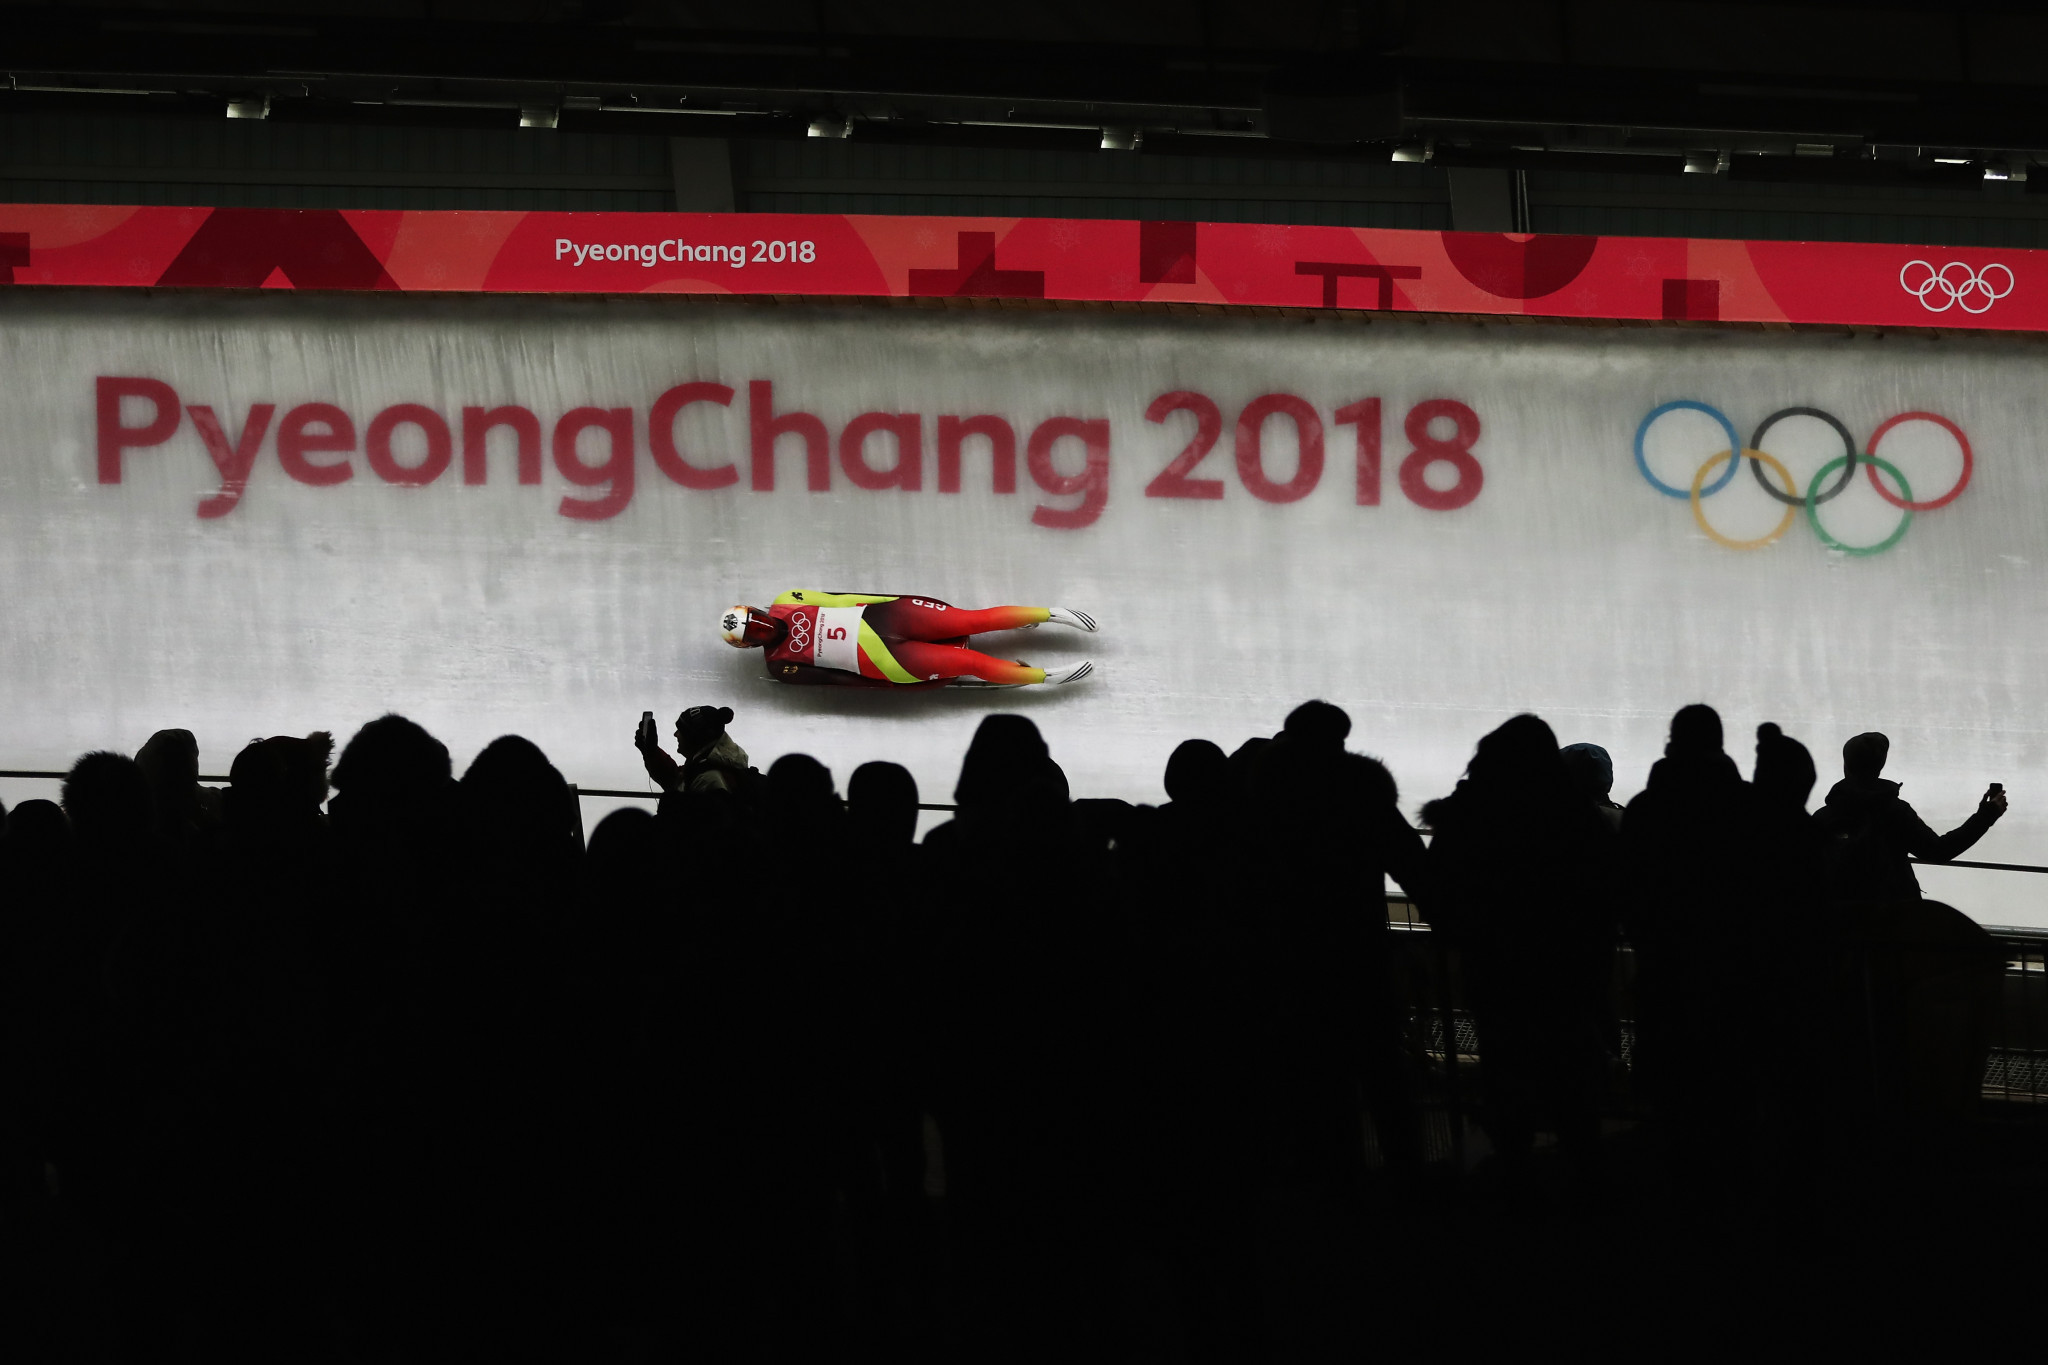 Dajana Eitberger was the singles silver medallist at the Pyeongchang 2018 Winter Olympic Games ©Getty Images